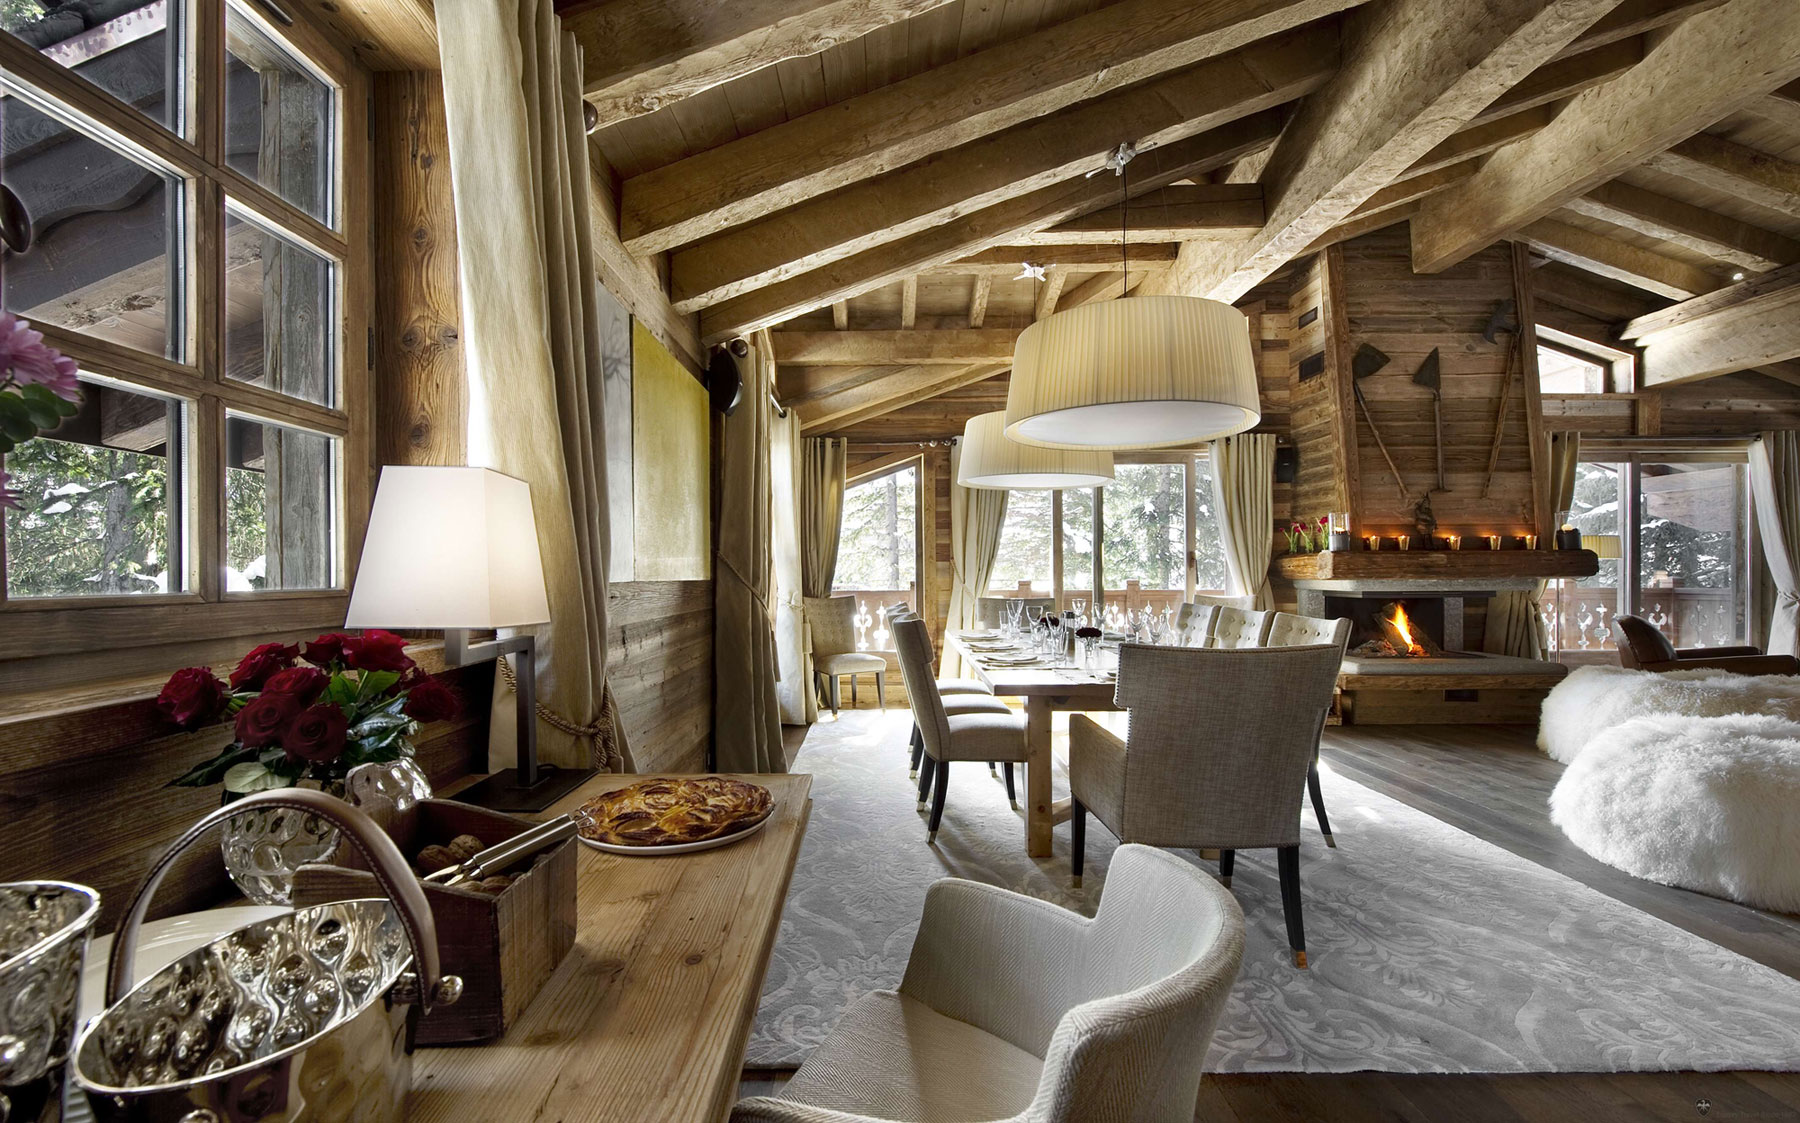 Cozy chalet les gentianes 1850 in the french alps 6 for Best small hotels in the world